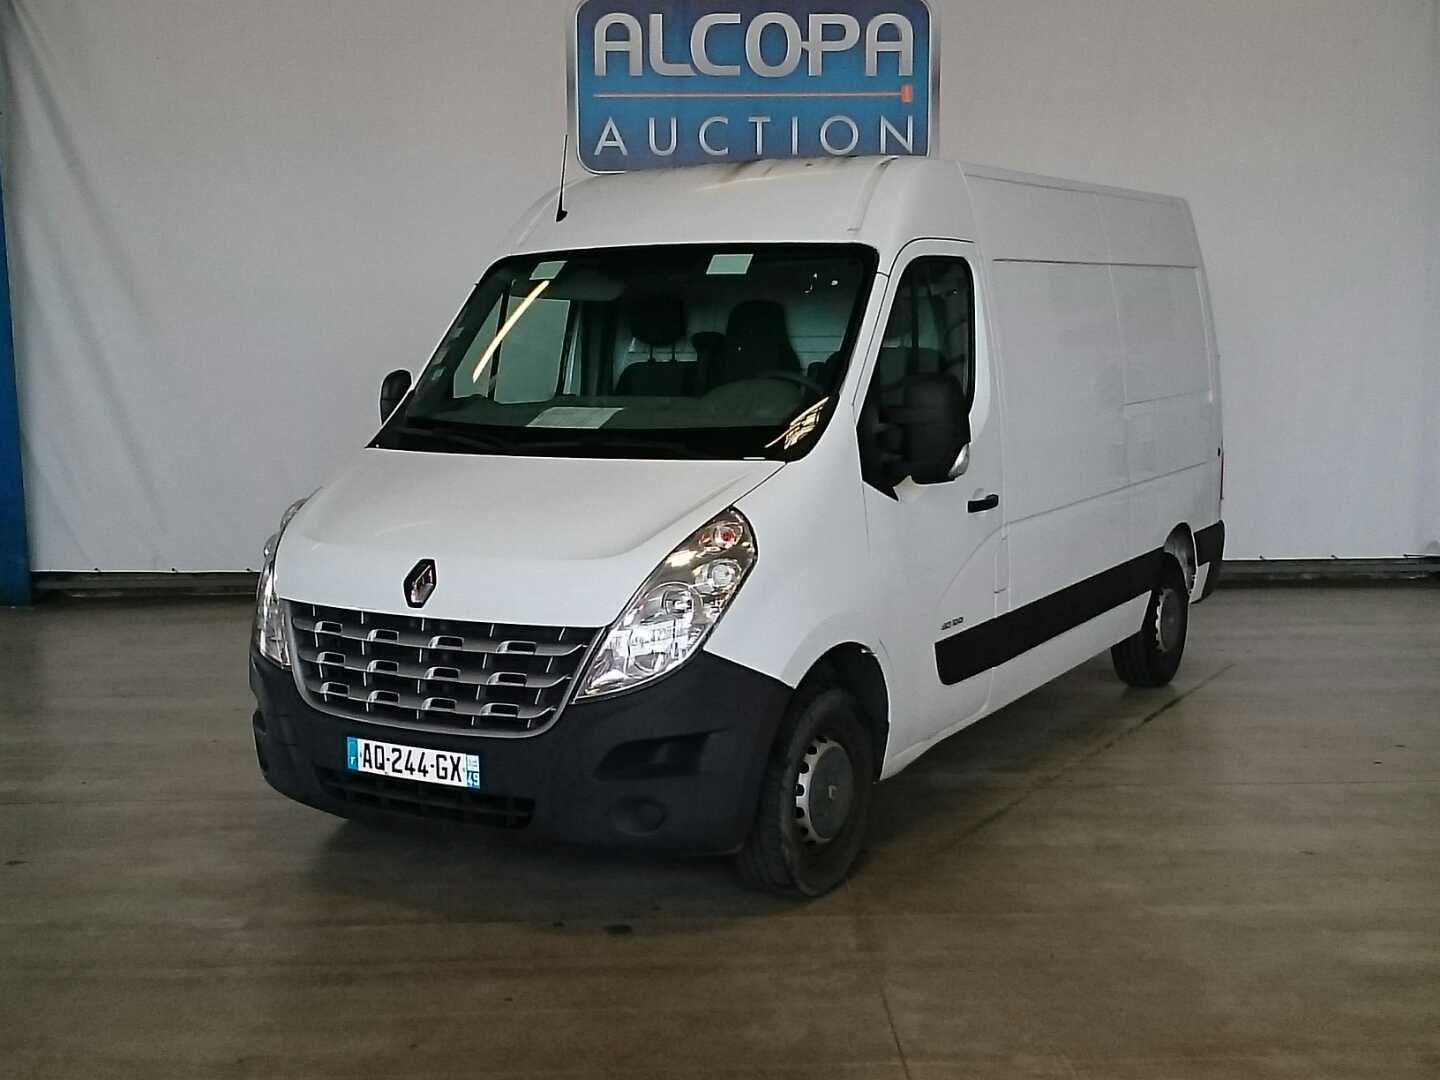 renault master fourgon master fgn l2h2 3 3t 2 3 dci 100 confort alcopa auction. Black Bedroom Furniture Sets. Home Design Ideas